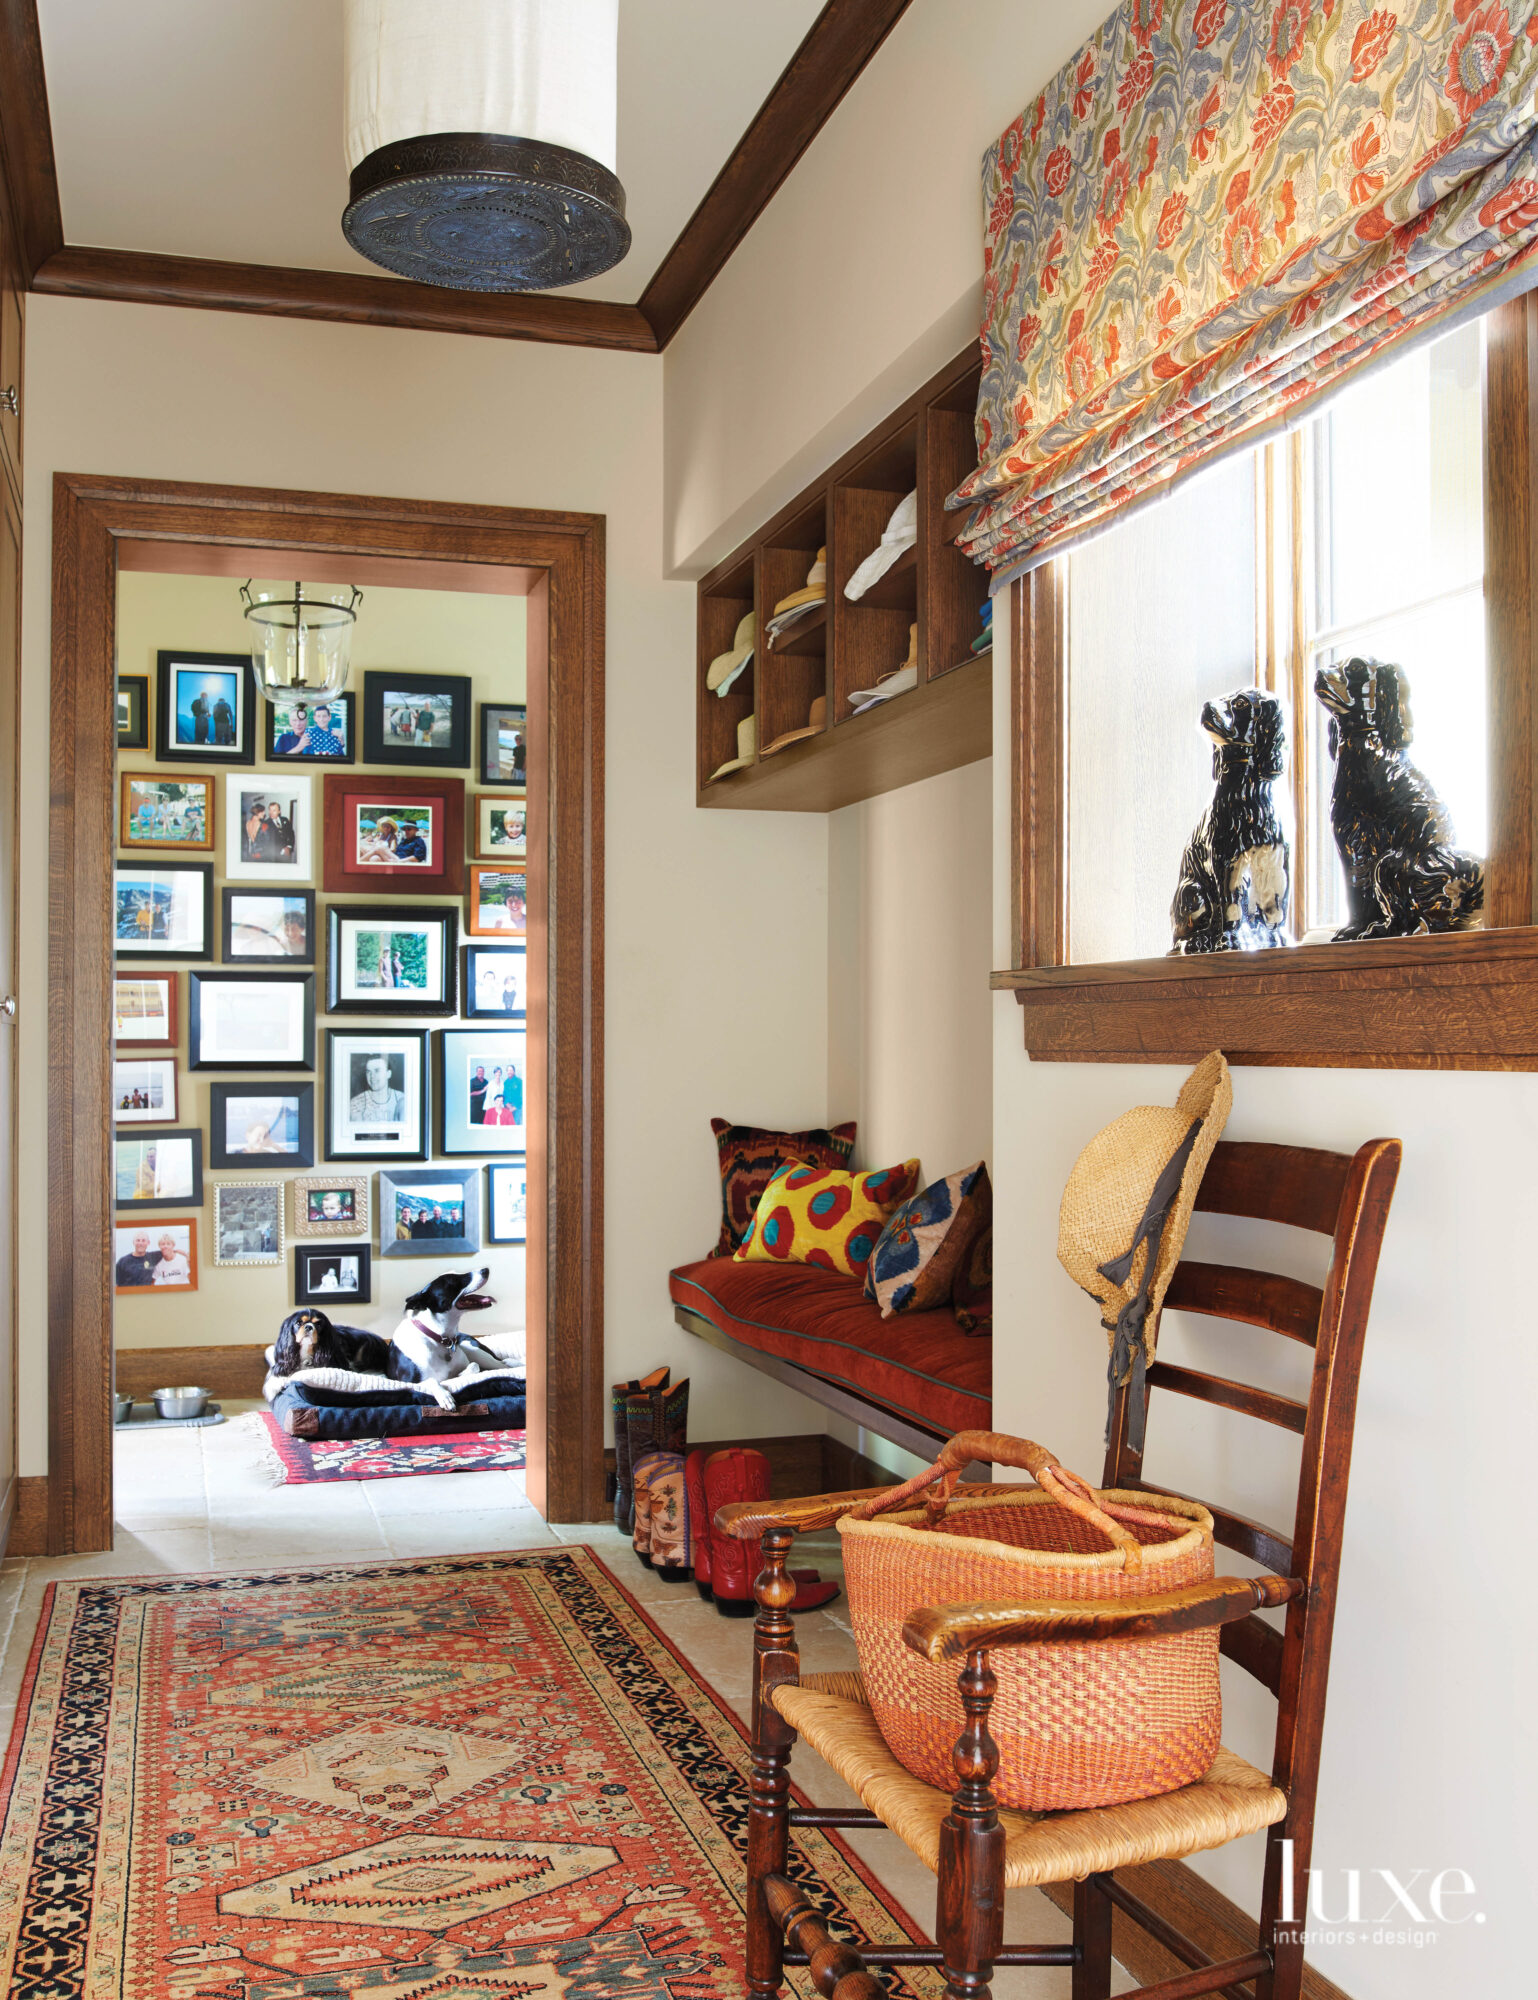 A mudroom features a bench and antique chair.